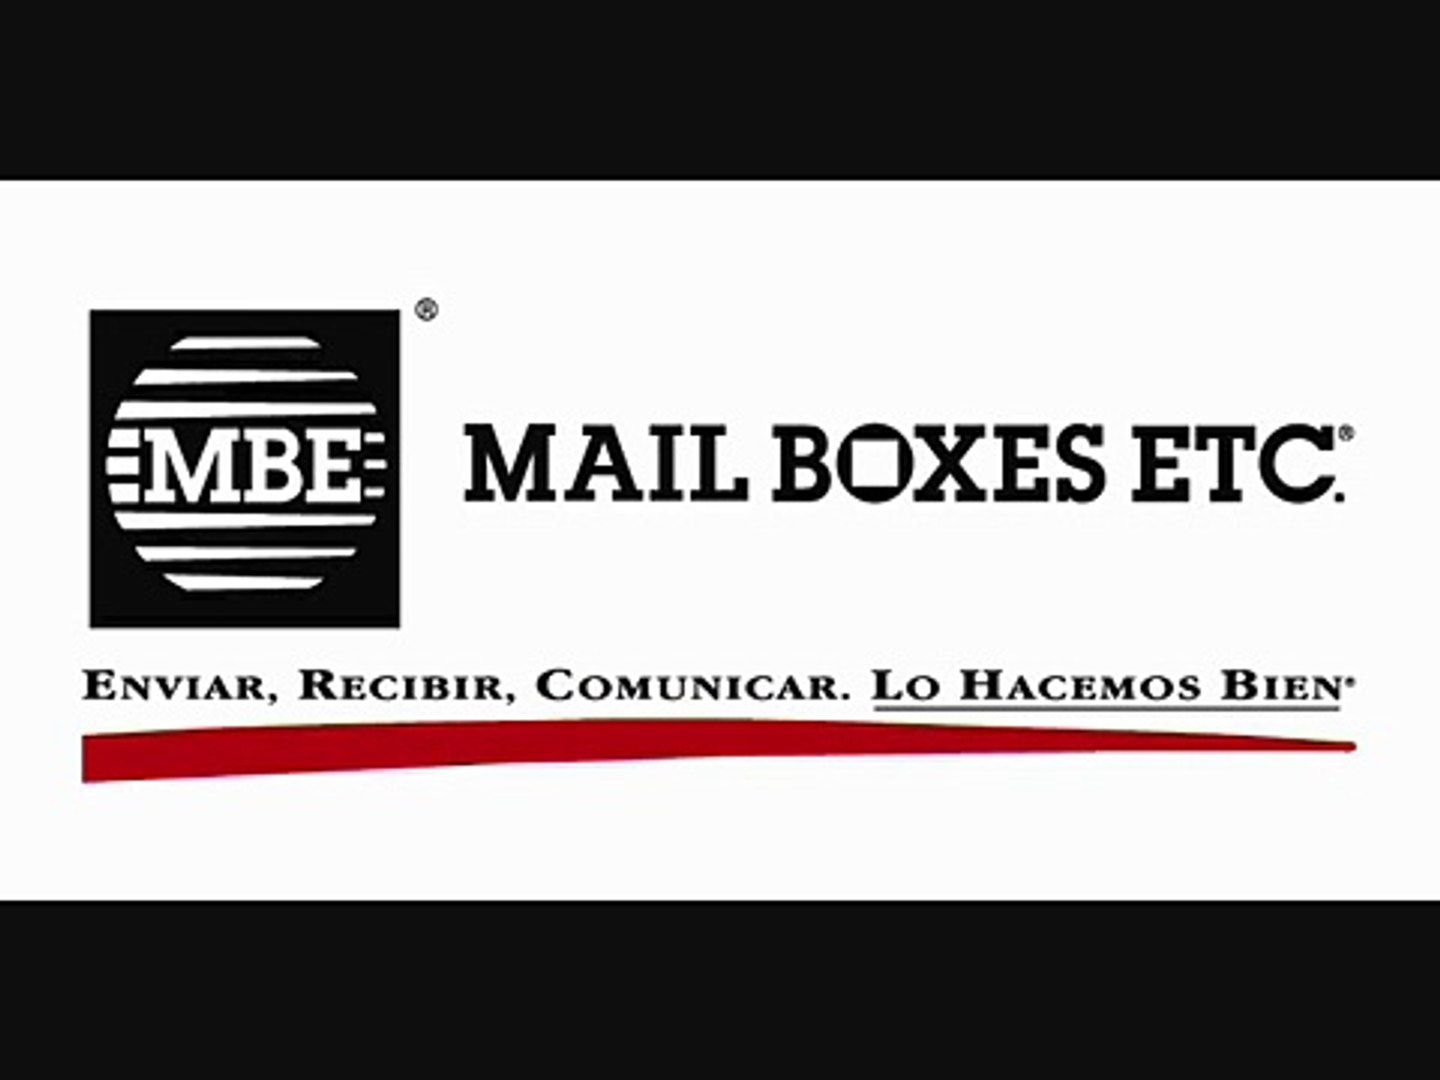 Cuna De Expansion De La Franquicia Mail Boxes Etc Video Dailymotion